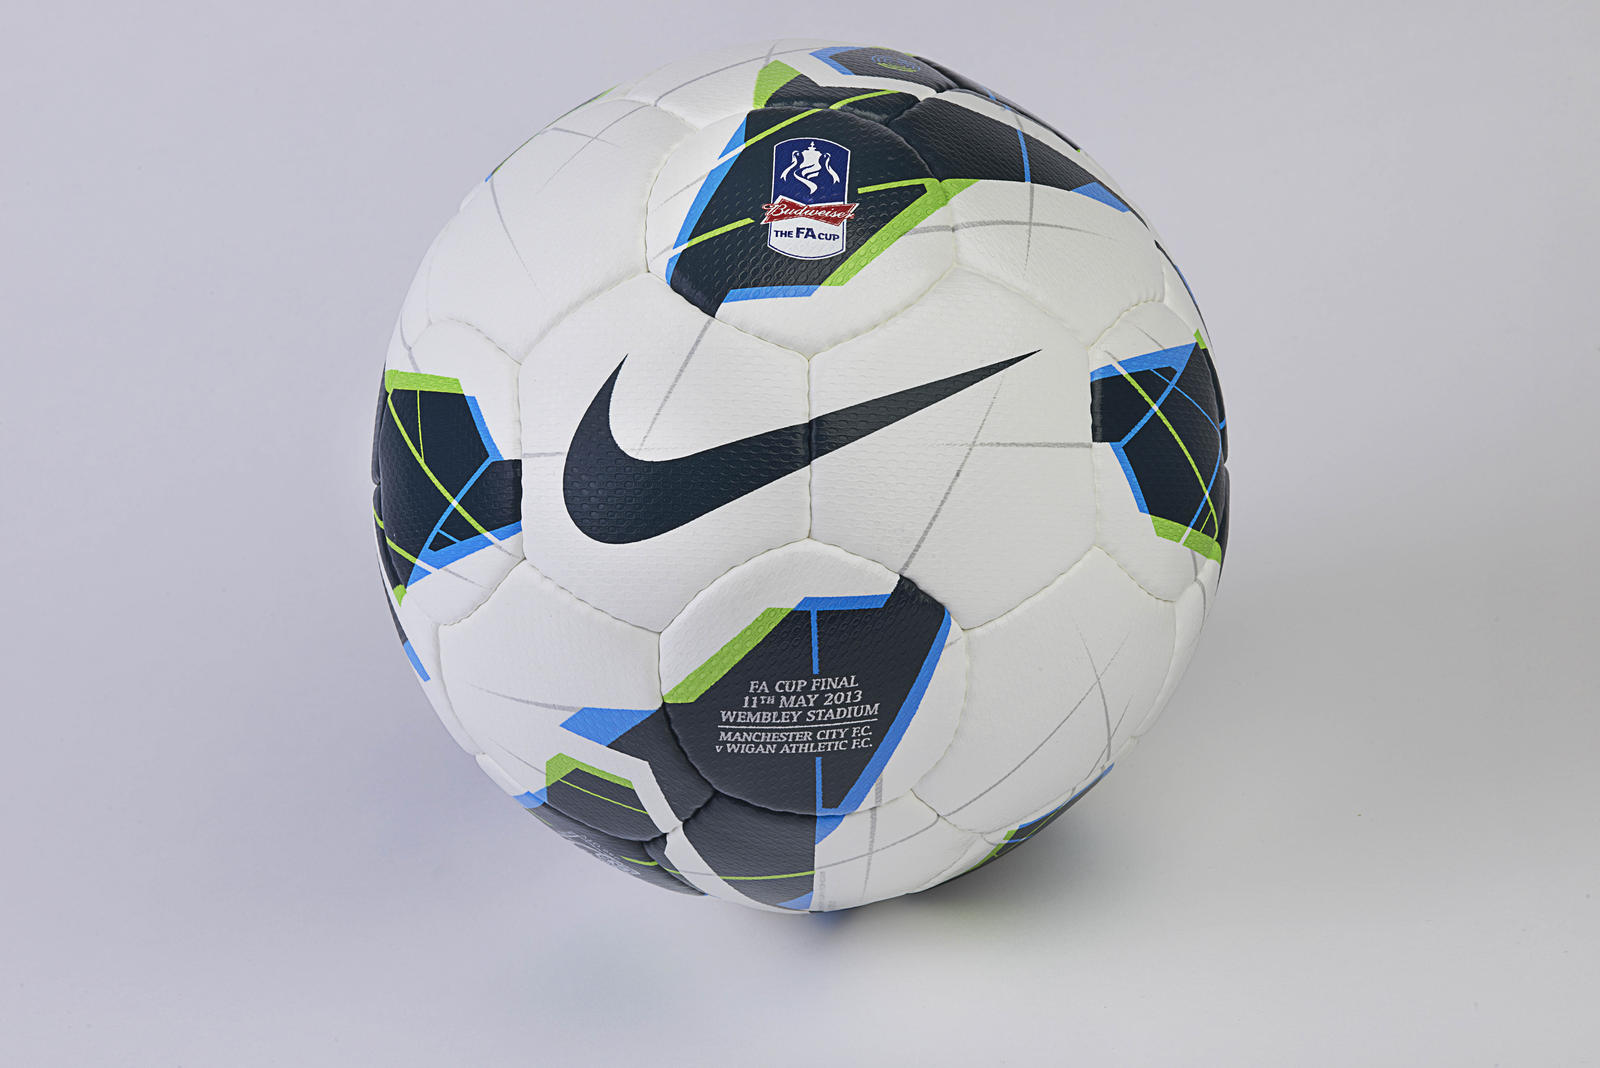 Nike Maxim Ball to be used for FA Cup Final - Nike News